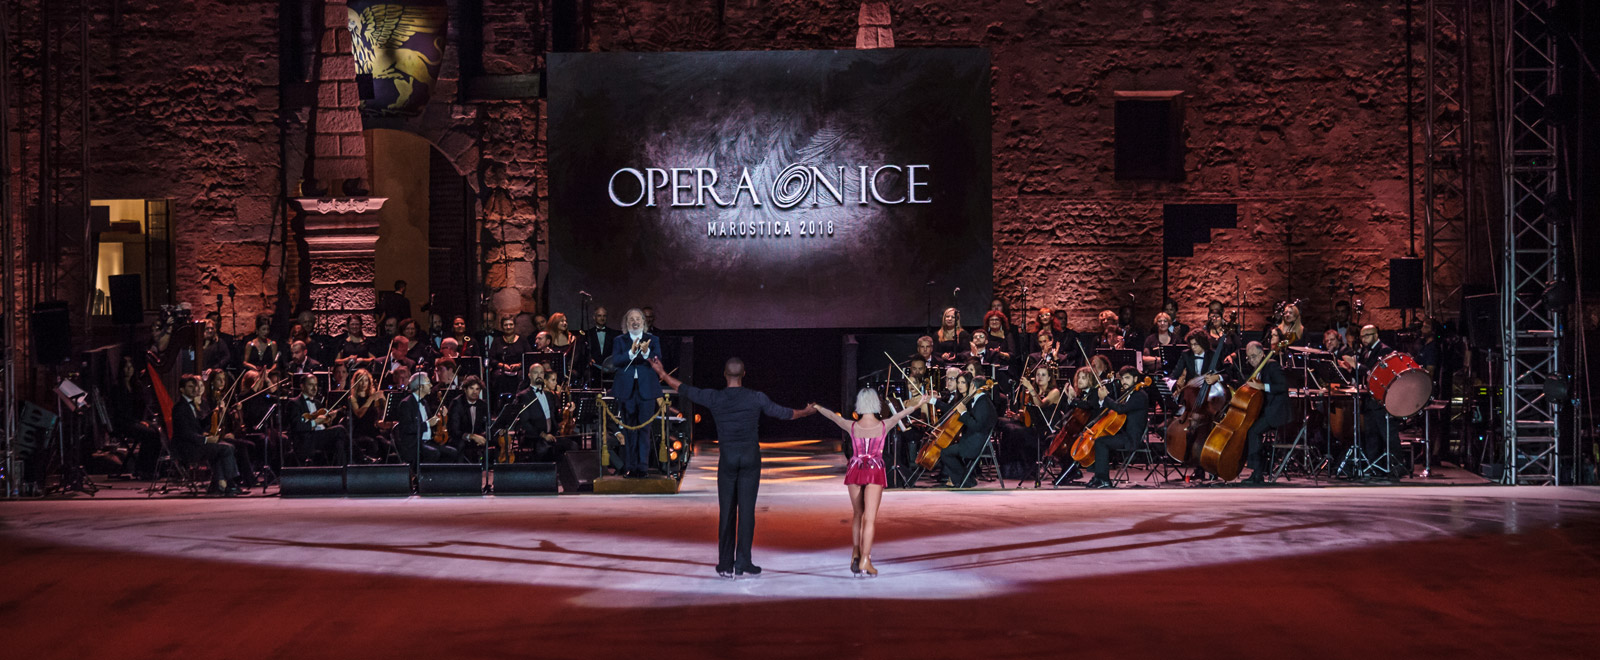 Opera on Ice su Canale 5 a Natale